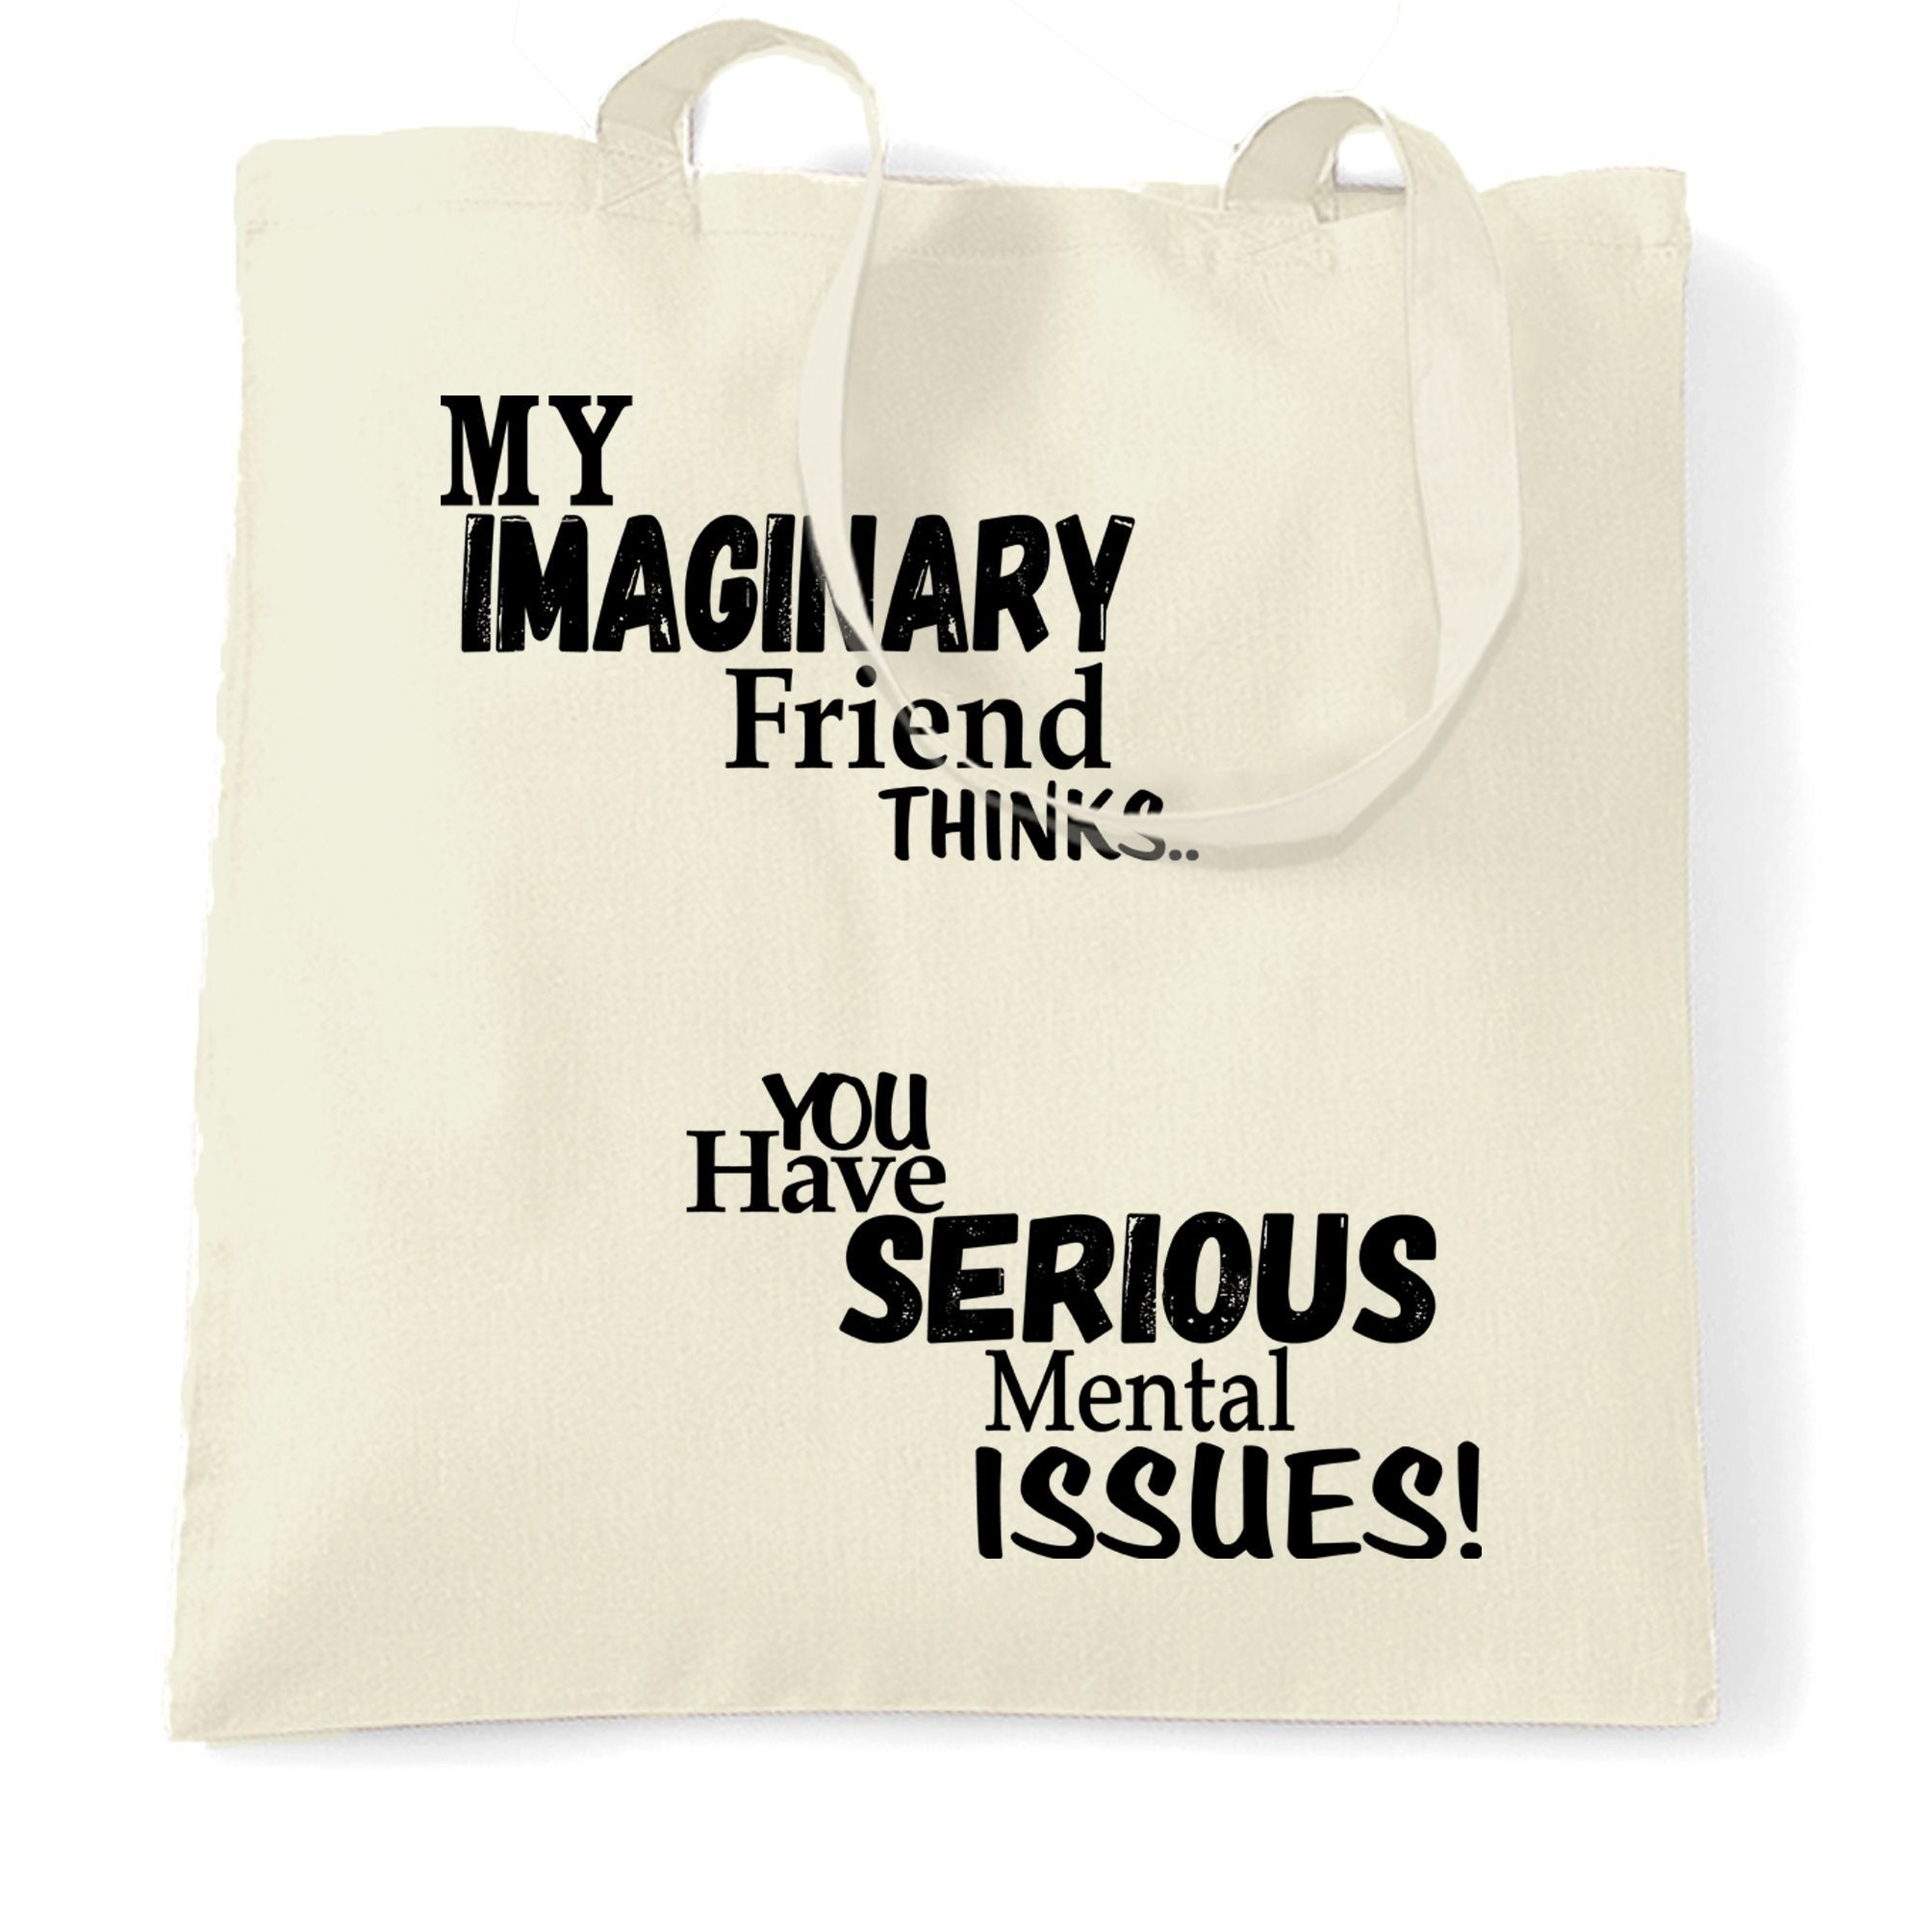 Sassy Tote Bag Imaginary Friend Thinks You Have Issues